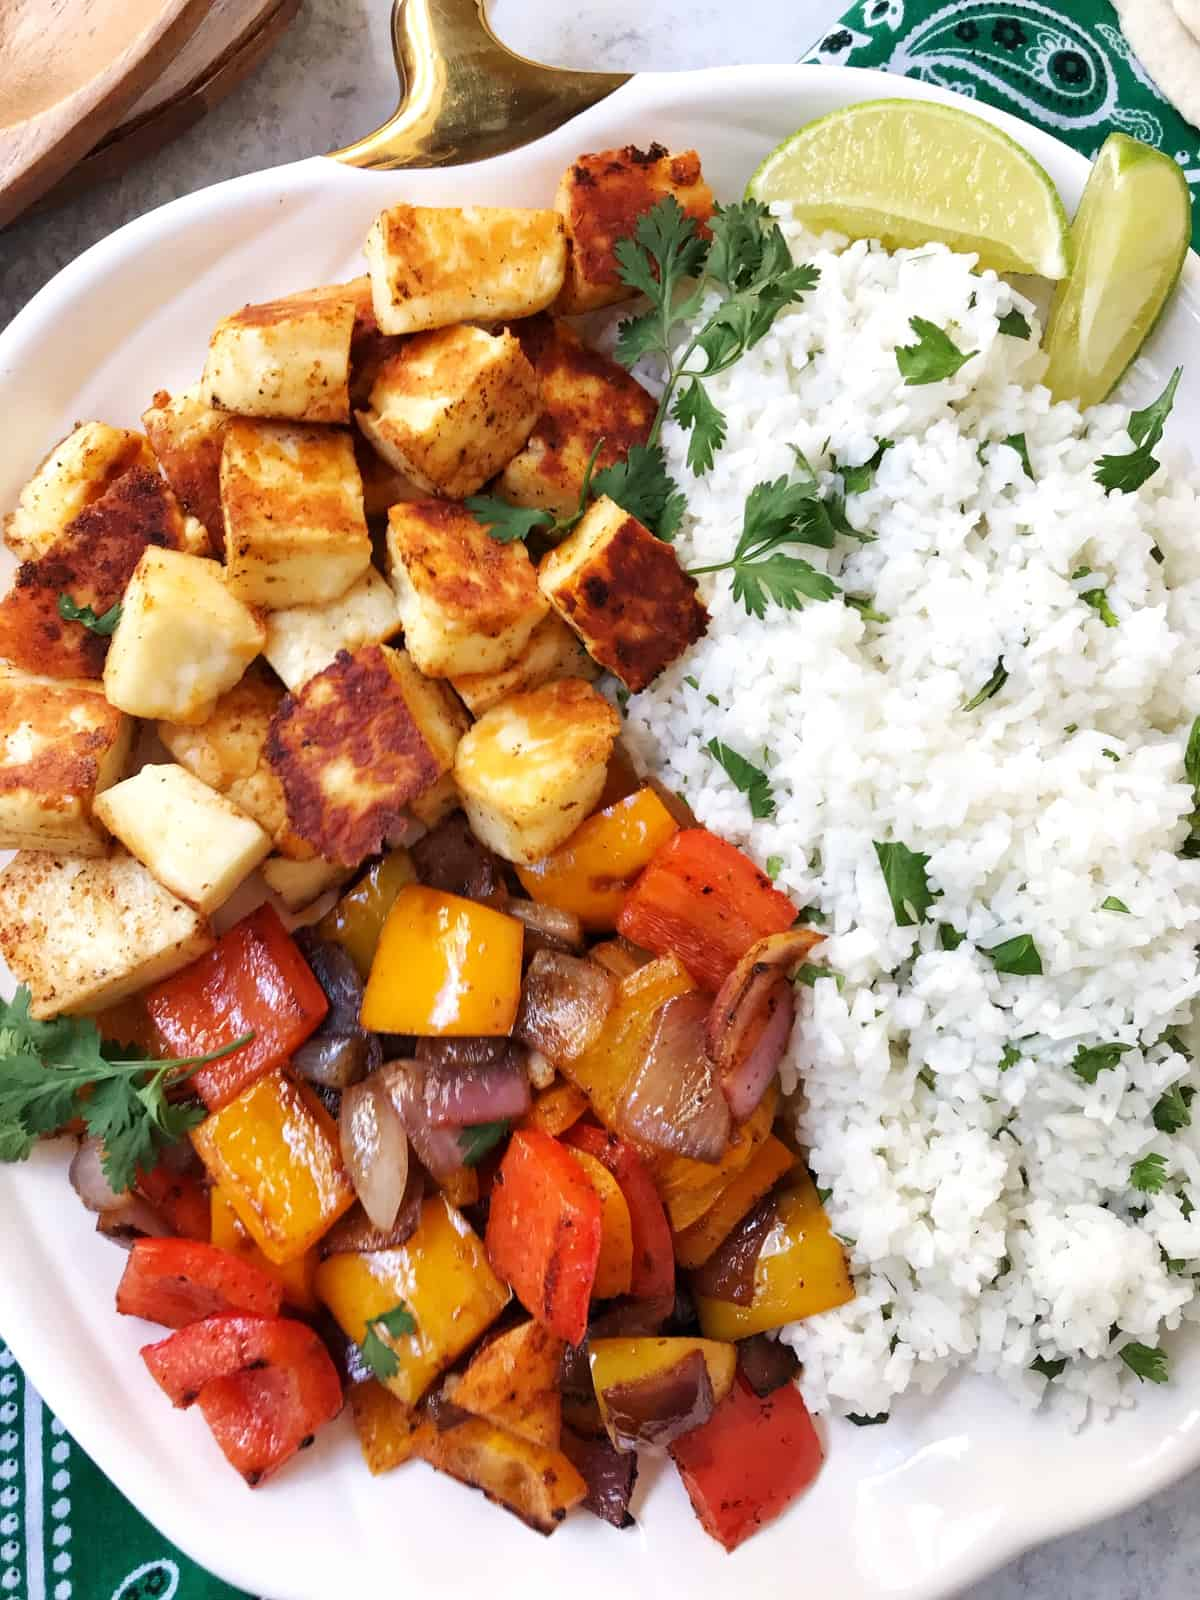 plate of fried halloumi with peppers, onions, and rice